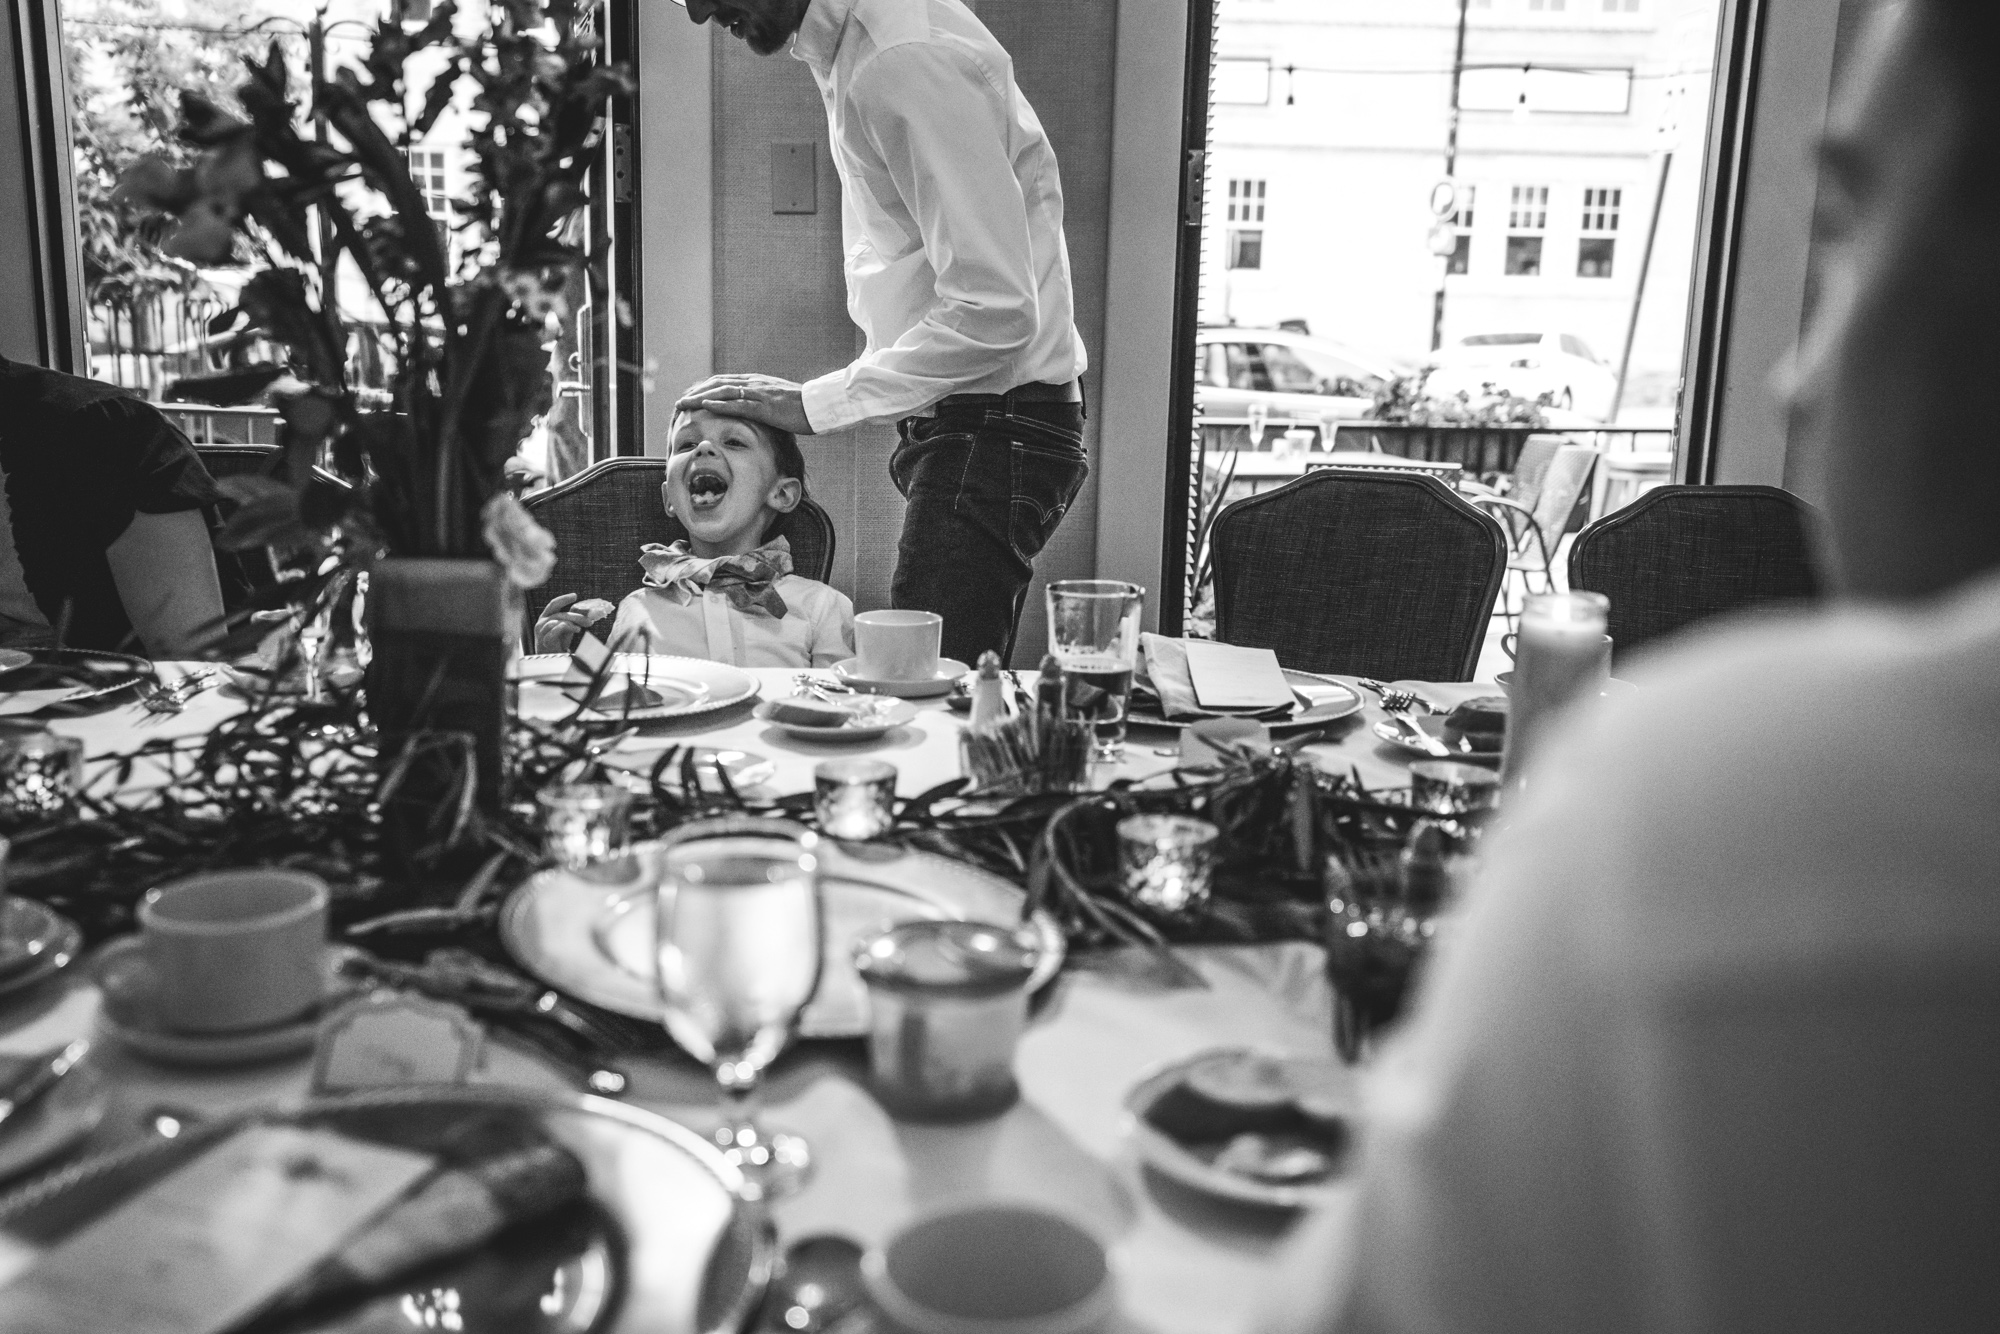 Black and white photo of a little boy at a wedding reception table, wearing a nice outfit and opening his mouth with food in it. Taken at the Hotel Boulderado.